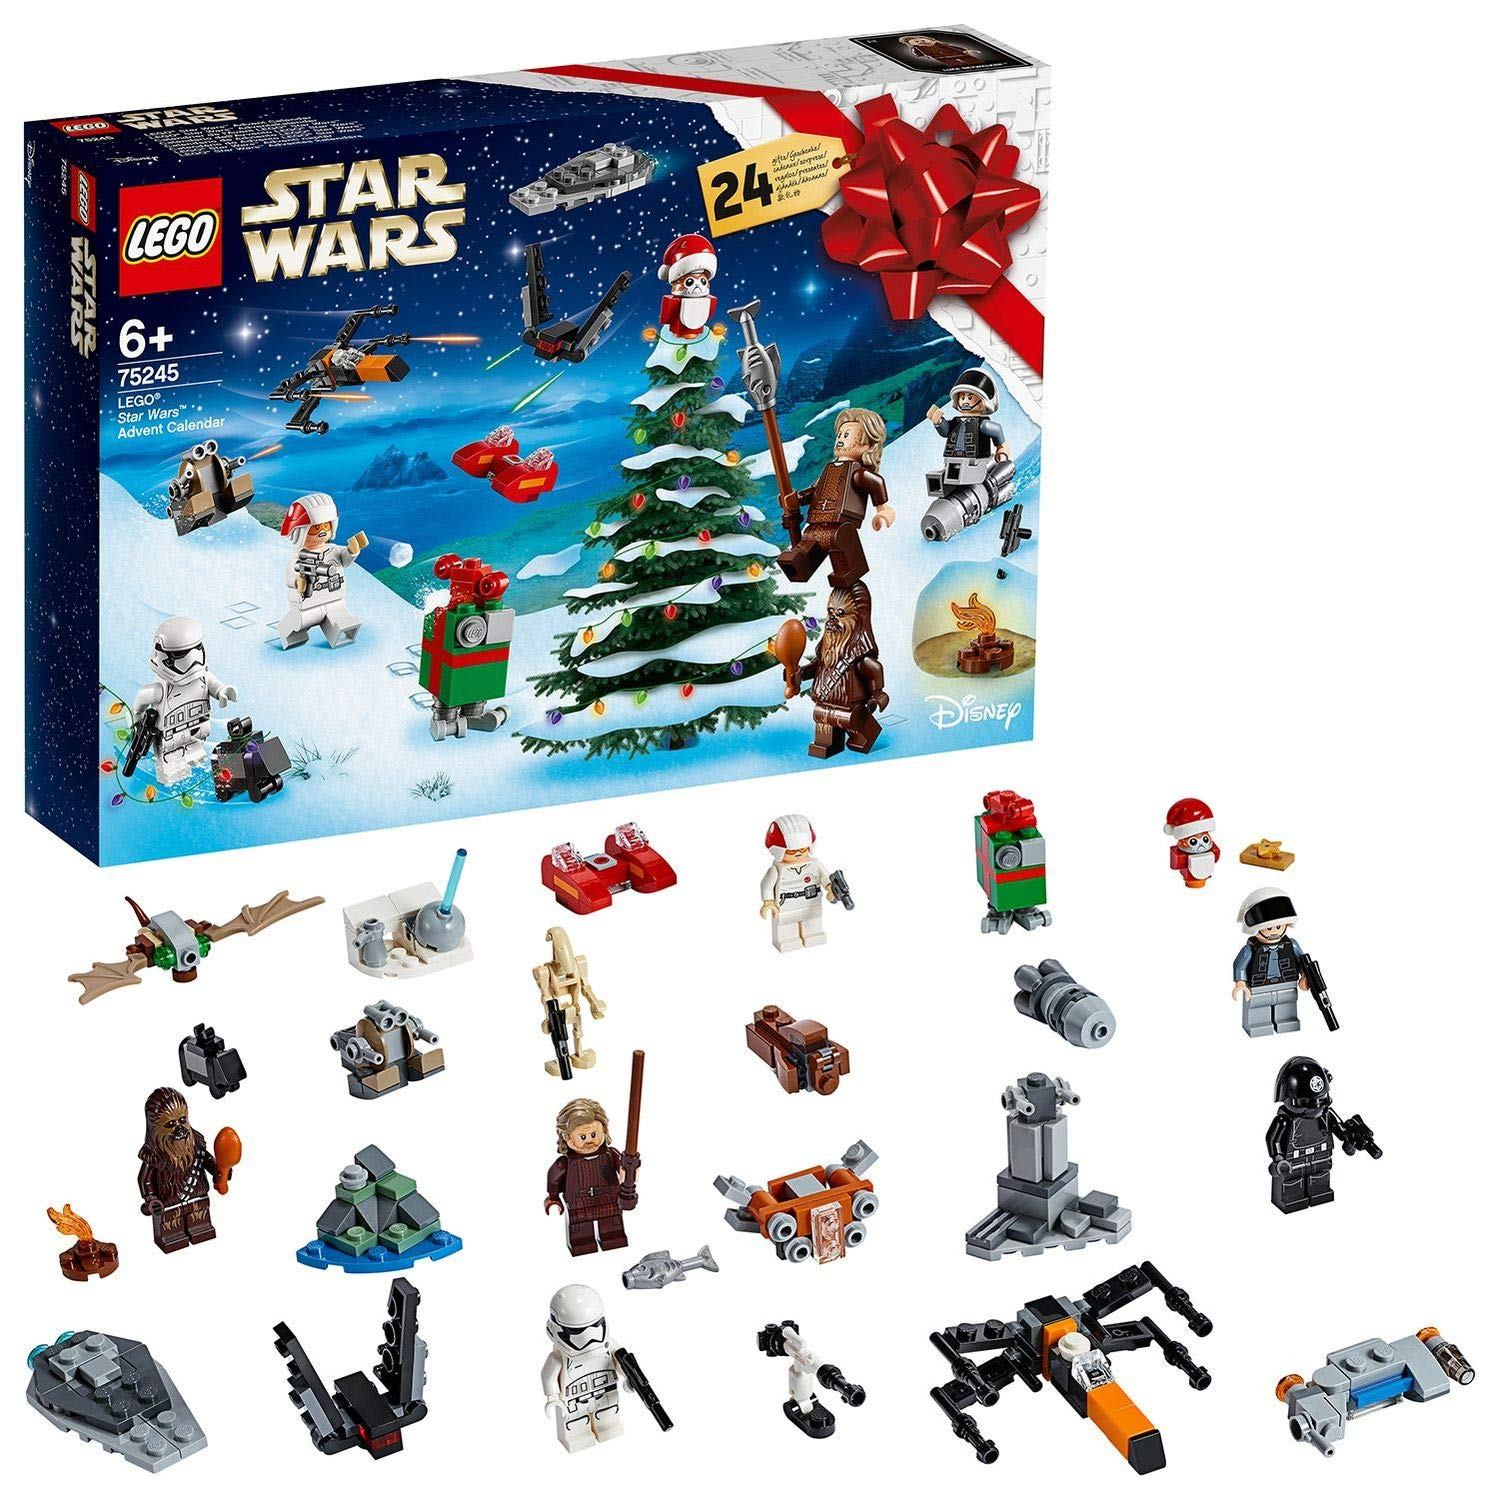 Lego Weihnachtskalender 2019.Lego 75245 Star Wars Advent Calendar 2019 Christmas Countdown Building Set With 24 Buildable Mini Sets Plus 6 Minifigures And 4 Droid Figures